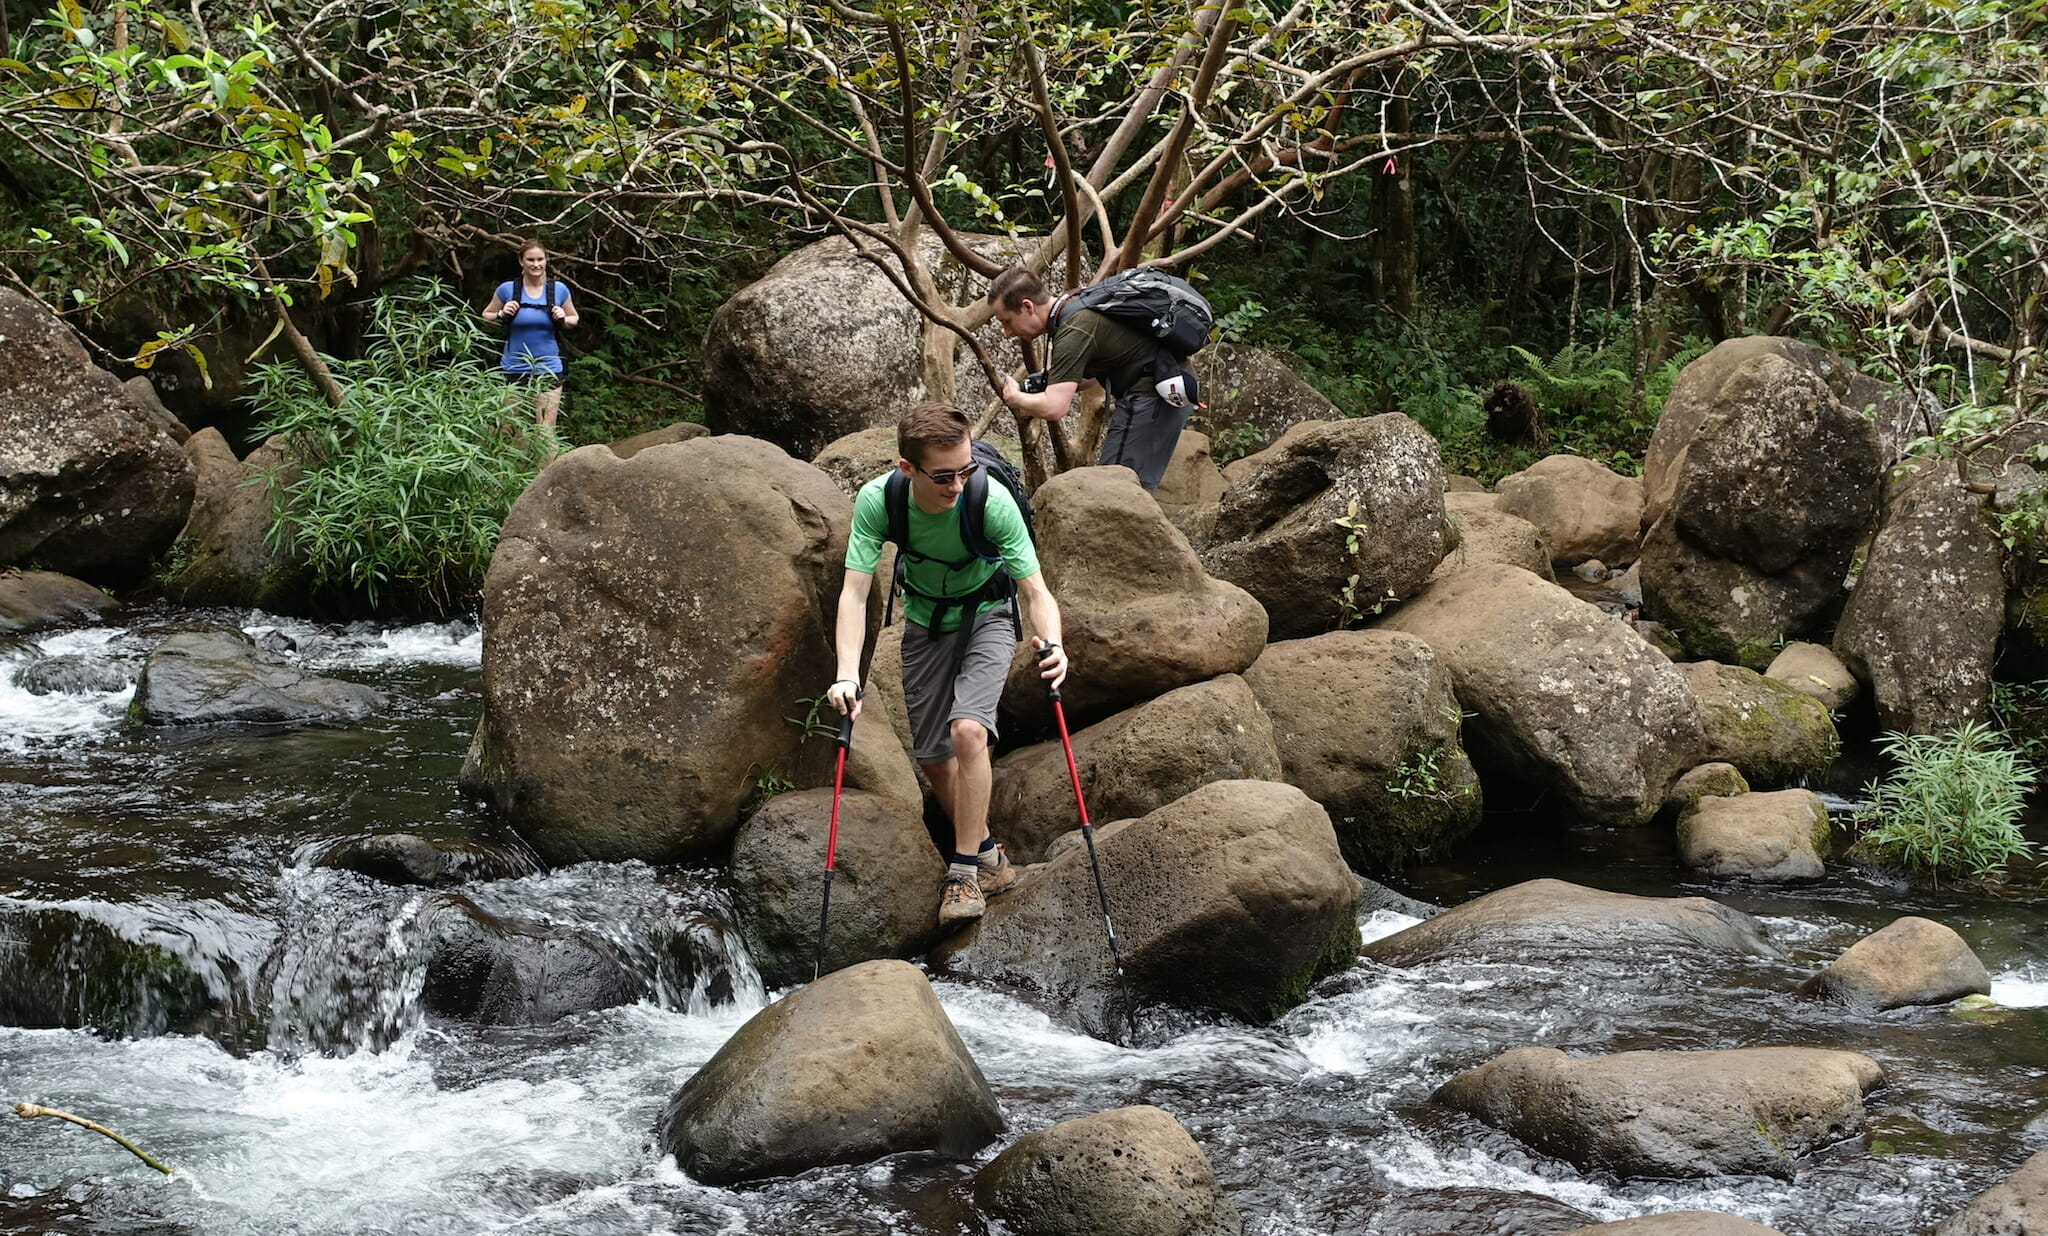 Kyle crossing Hanakapiai stream. Two other hikers in the background.